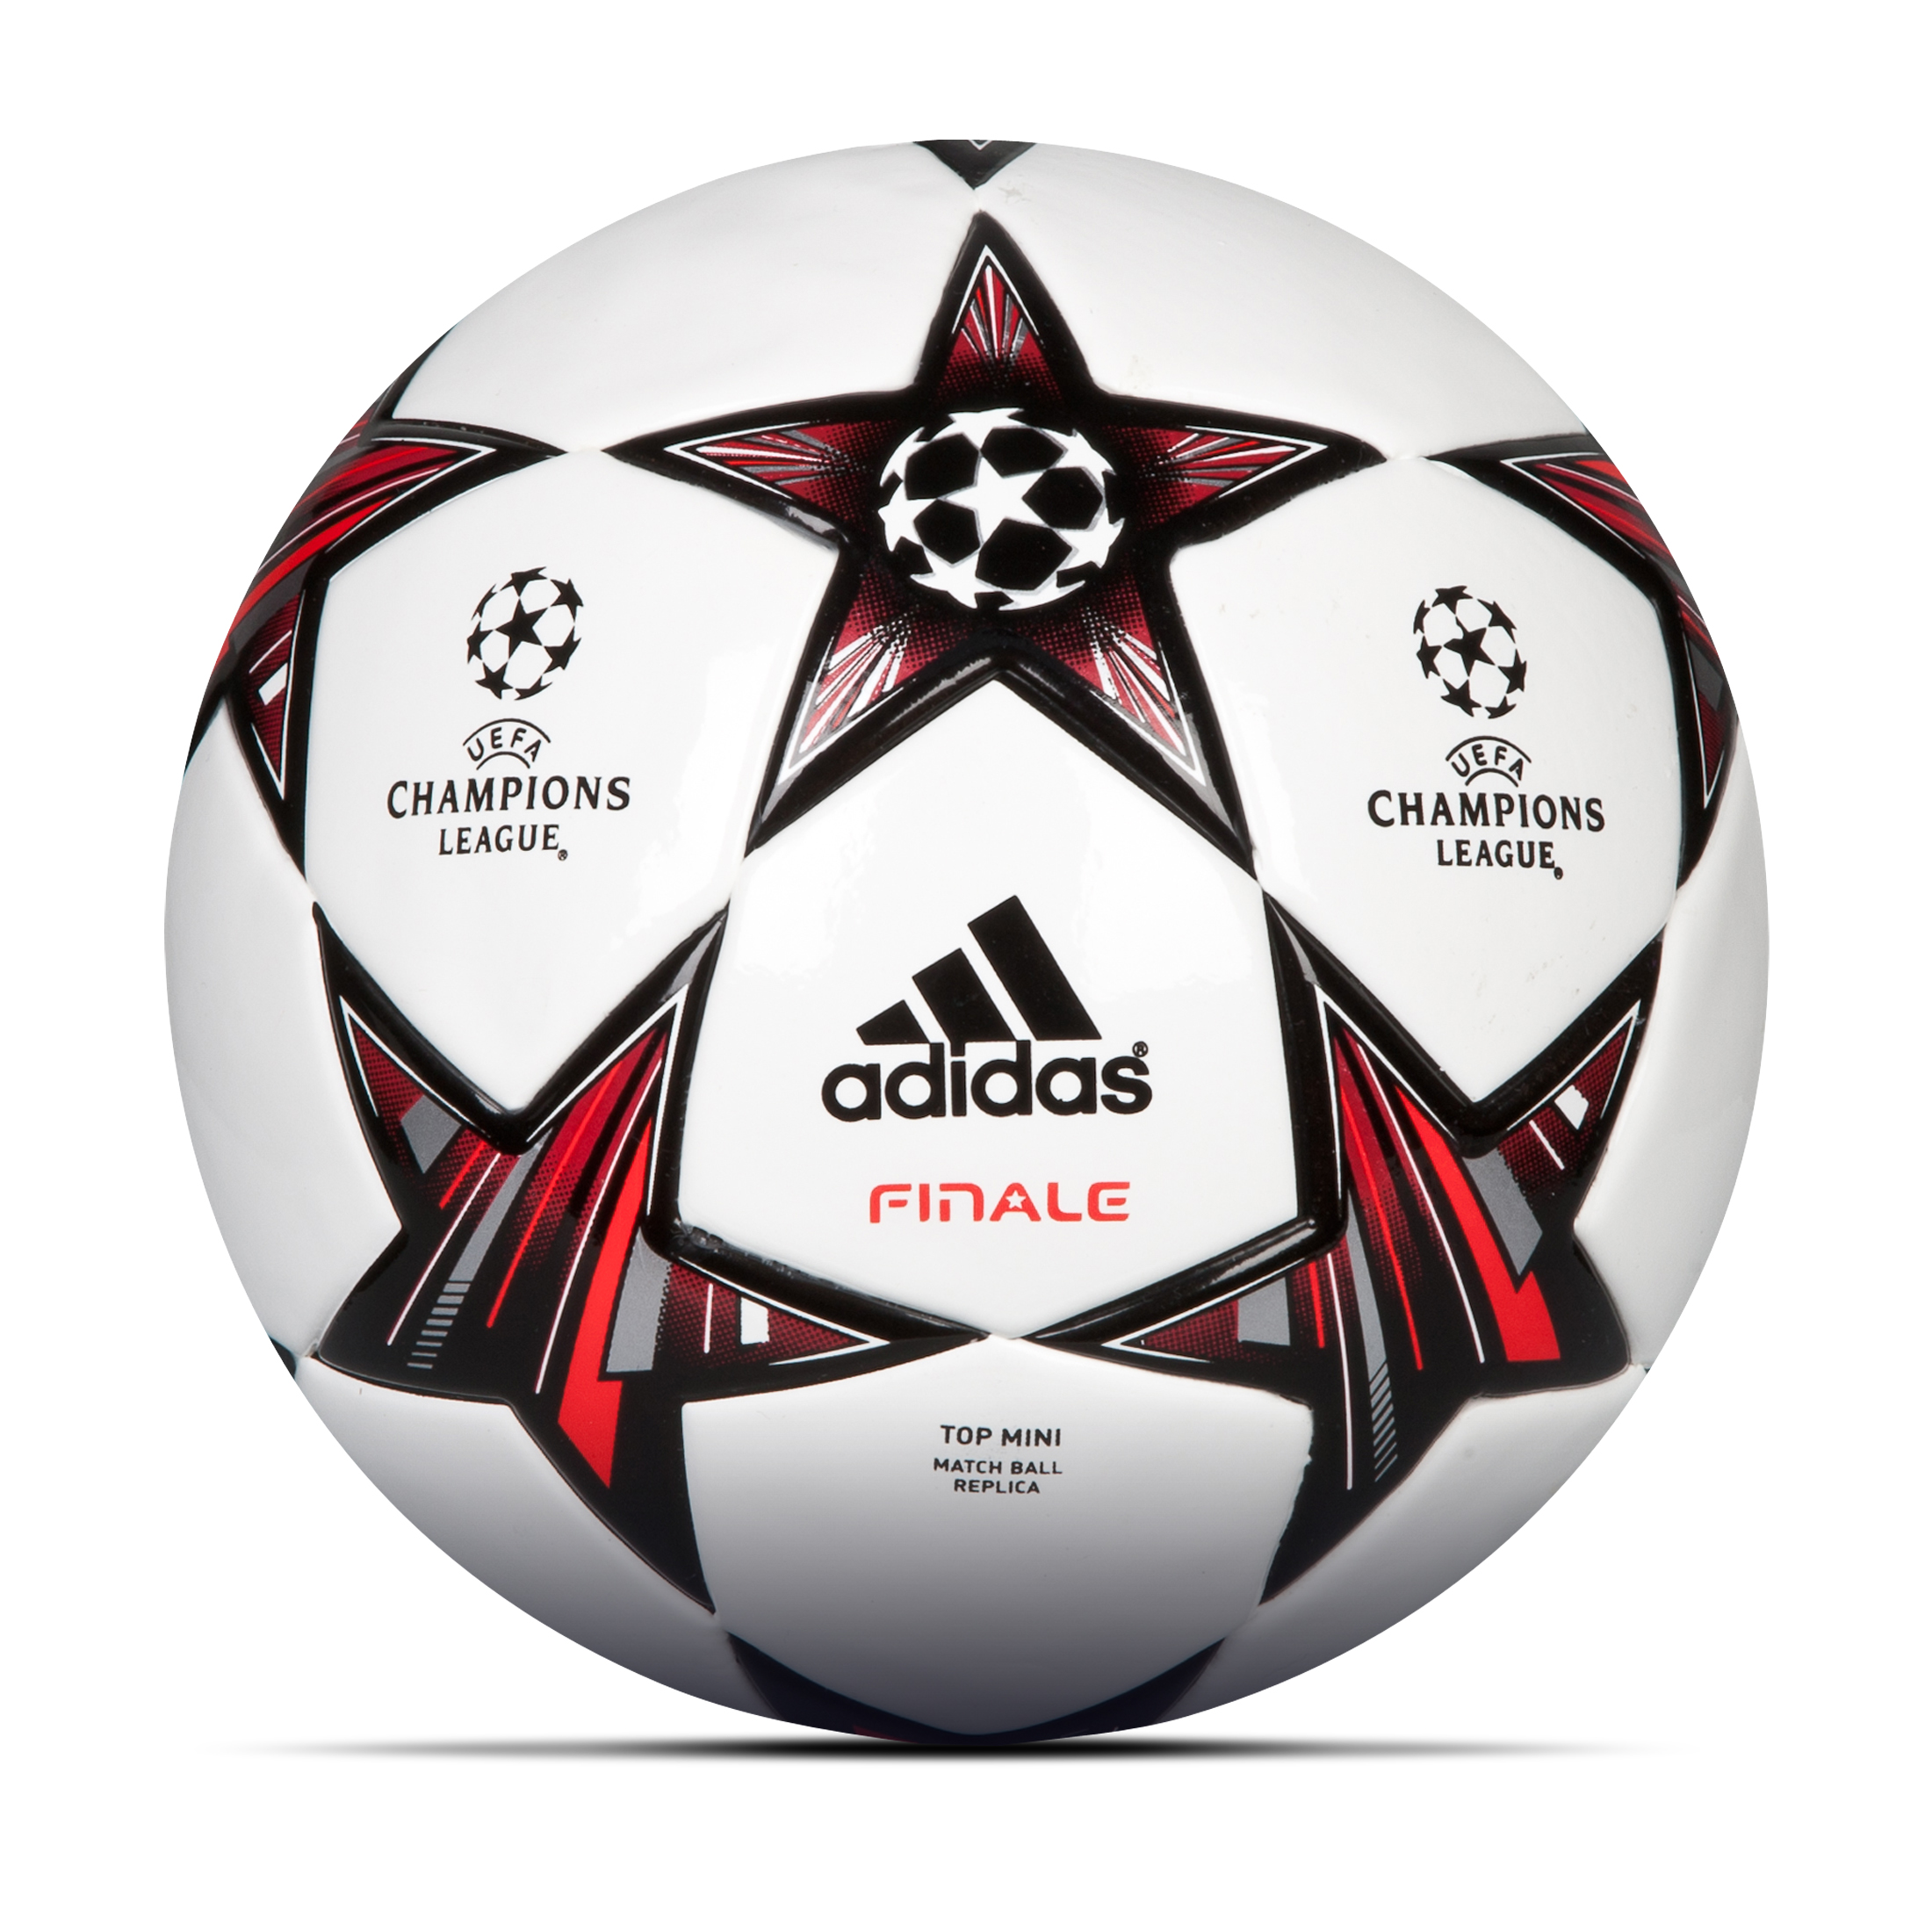 Adidas UEFA Champions League Finale 13 Top Mini Football - Size 1 White